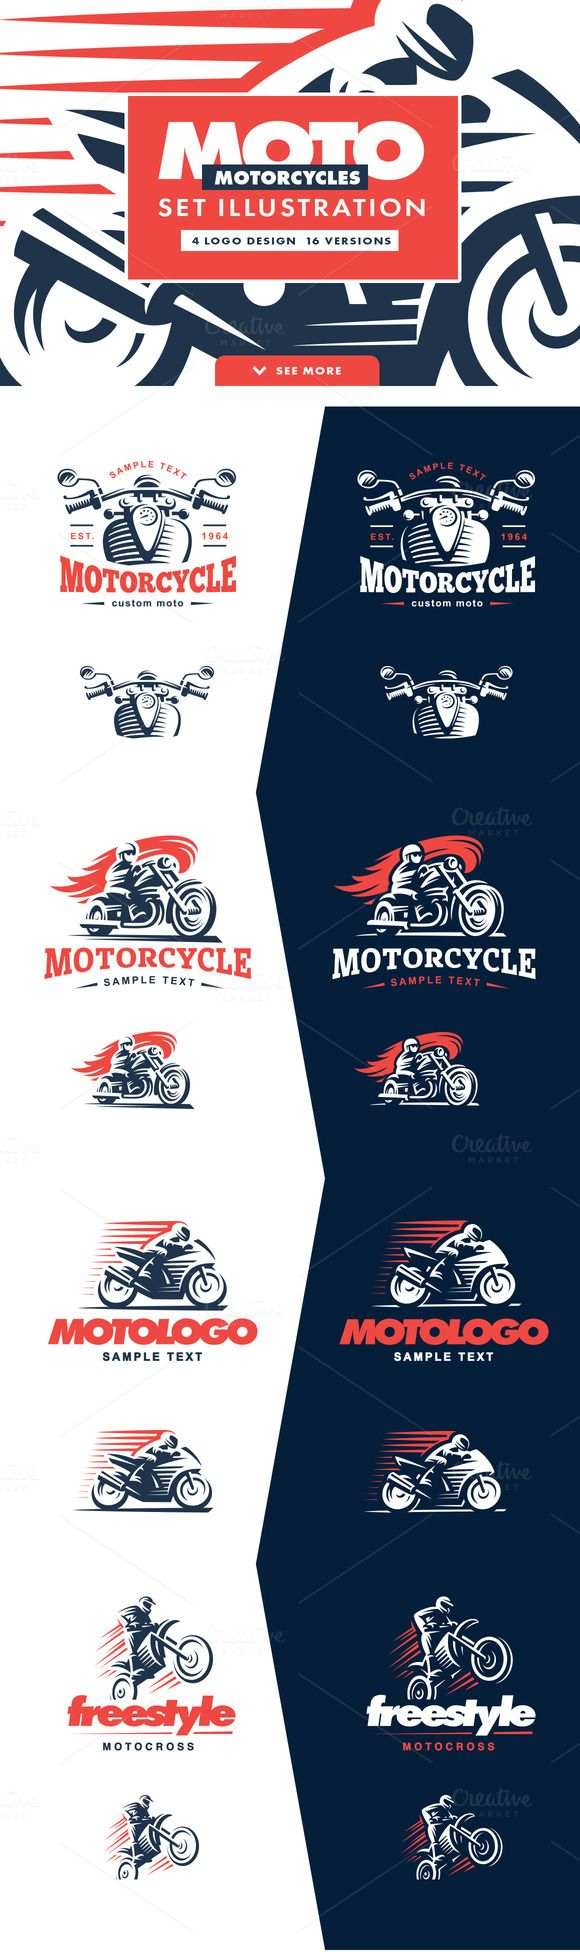 Motorcycle logo set @creativework247